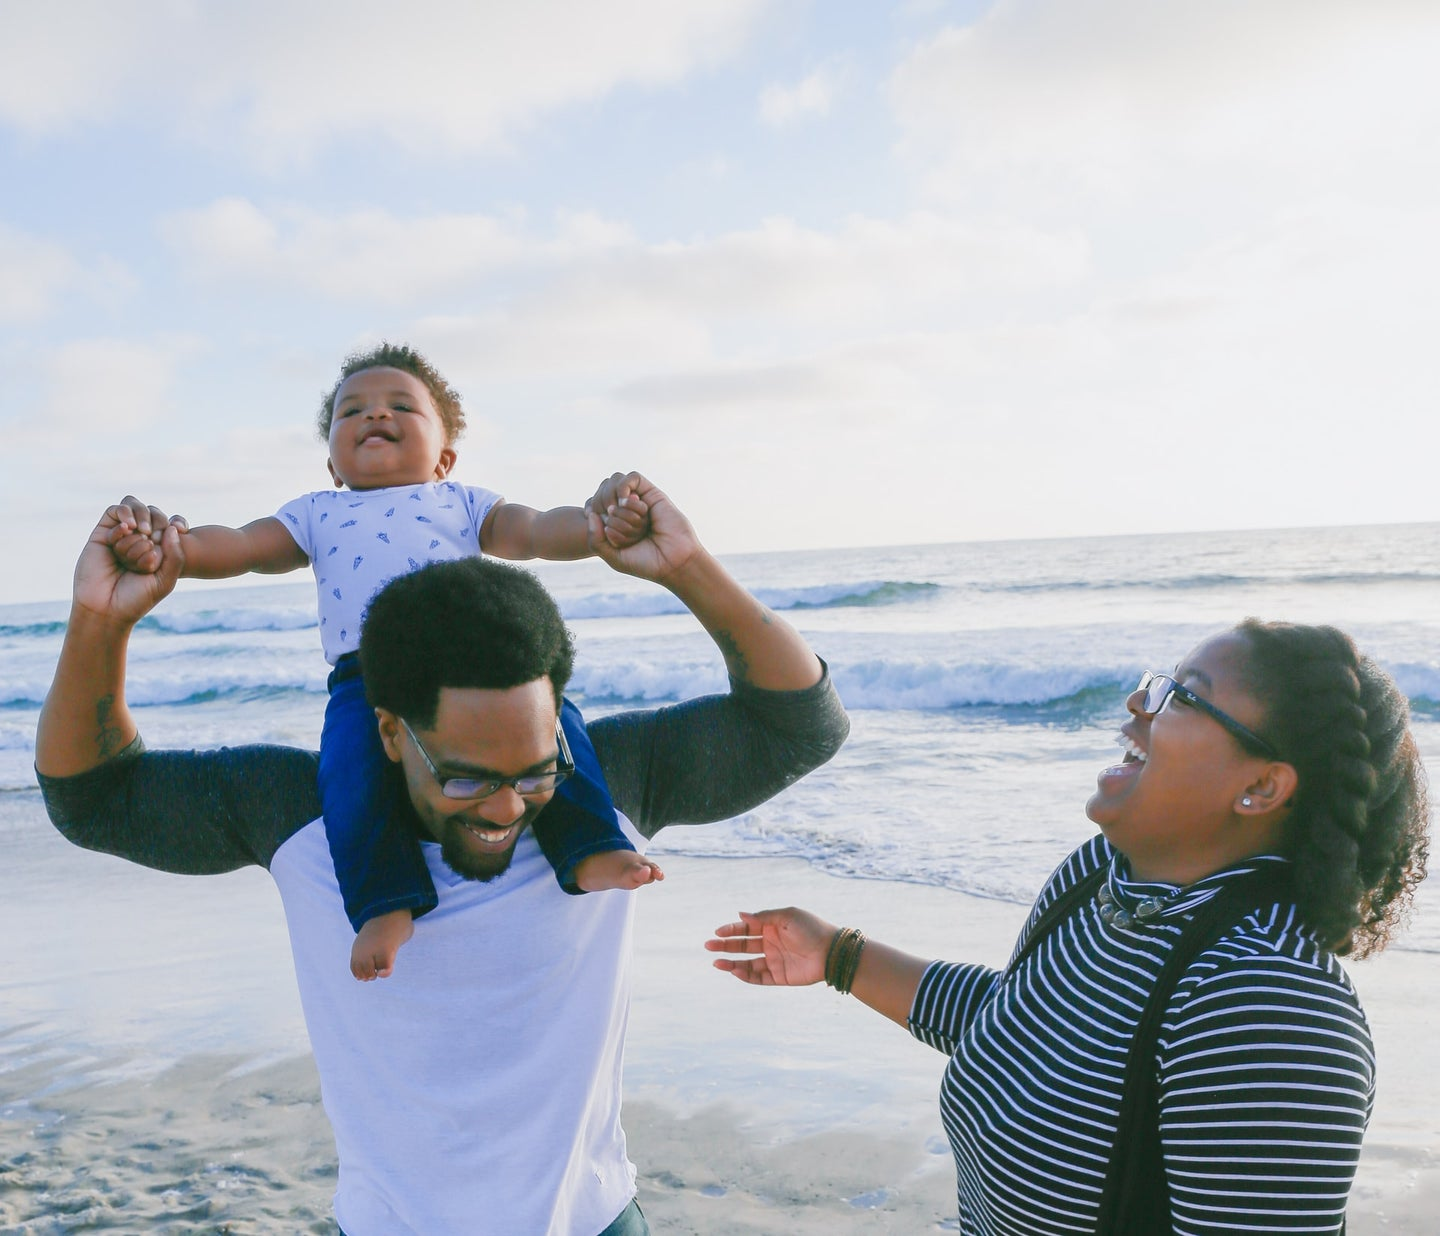 A Black family enjoying the beach with their toddler